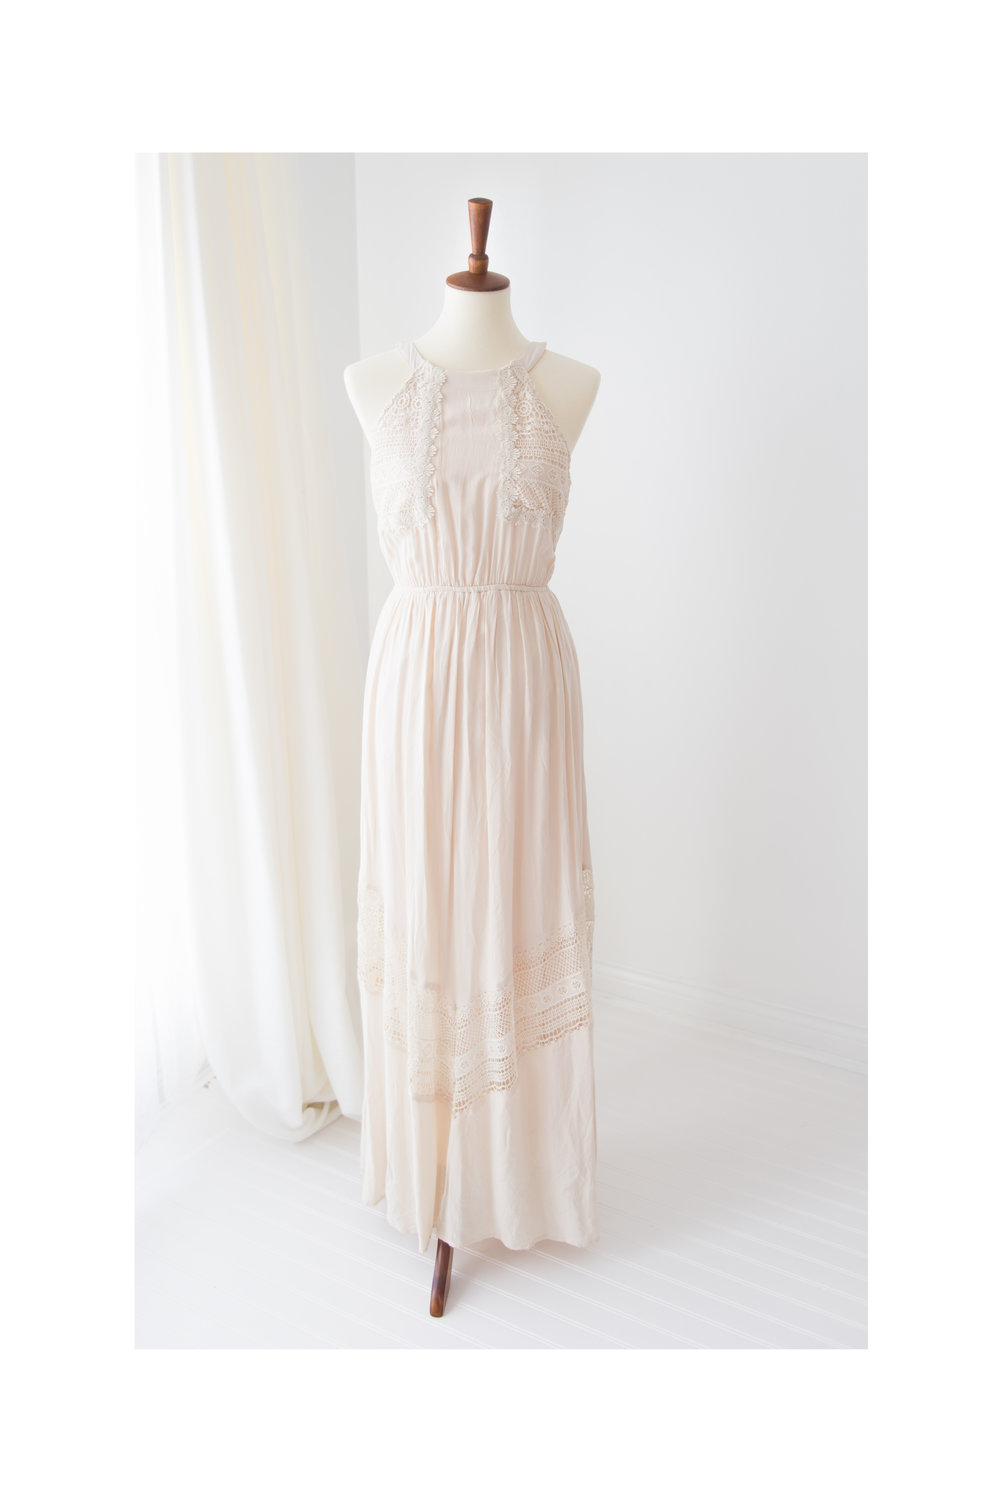 white sleeveless maxi dress altard state cream color